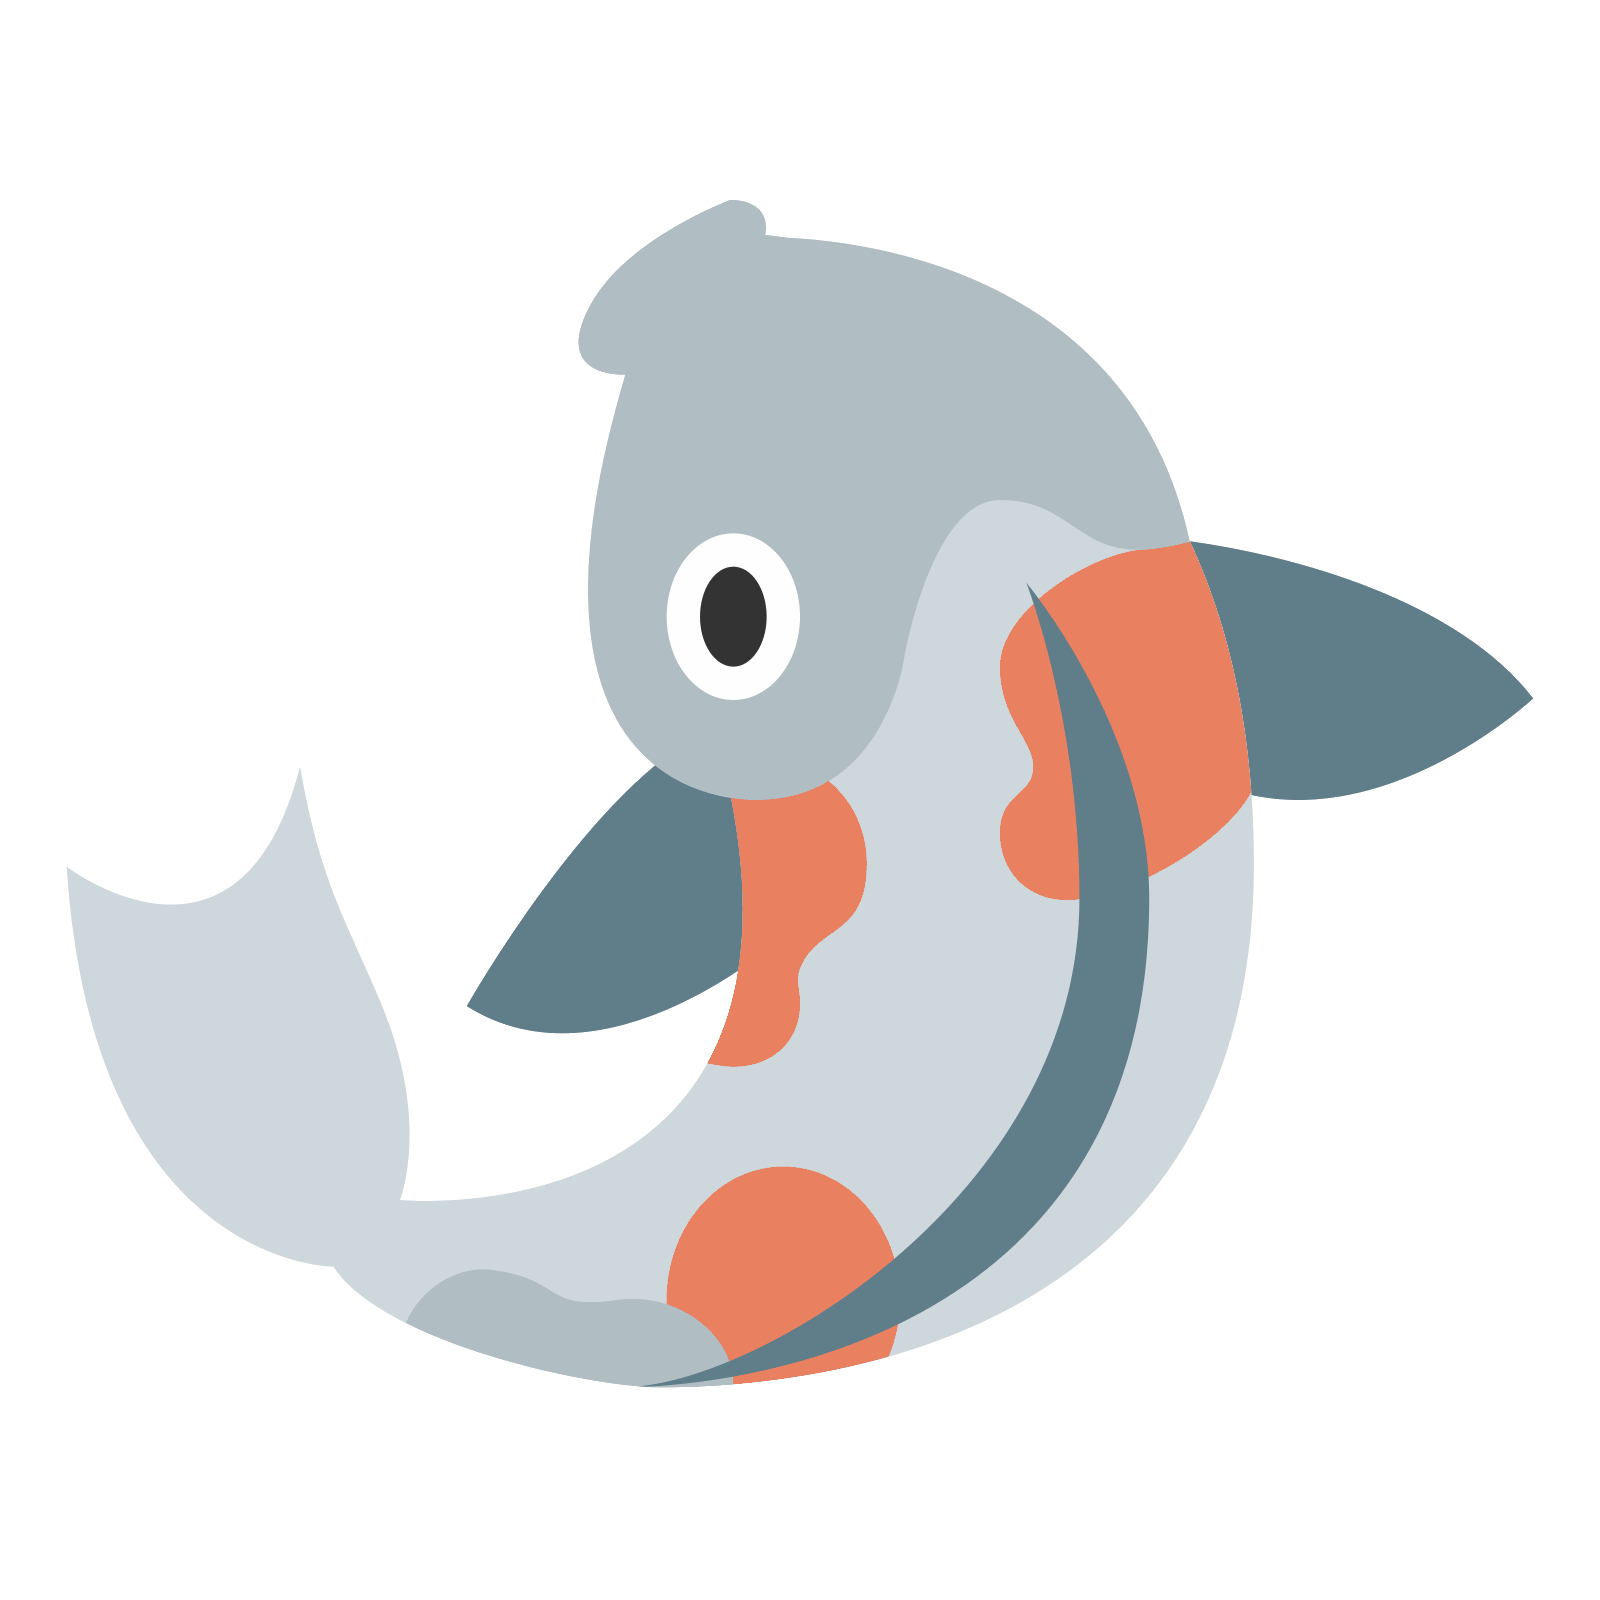 Icon free download and. Koi fish png graphic free download